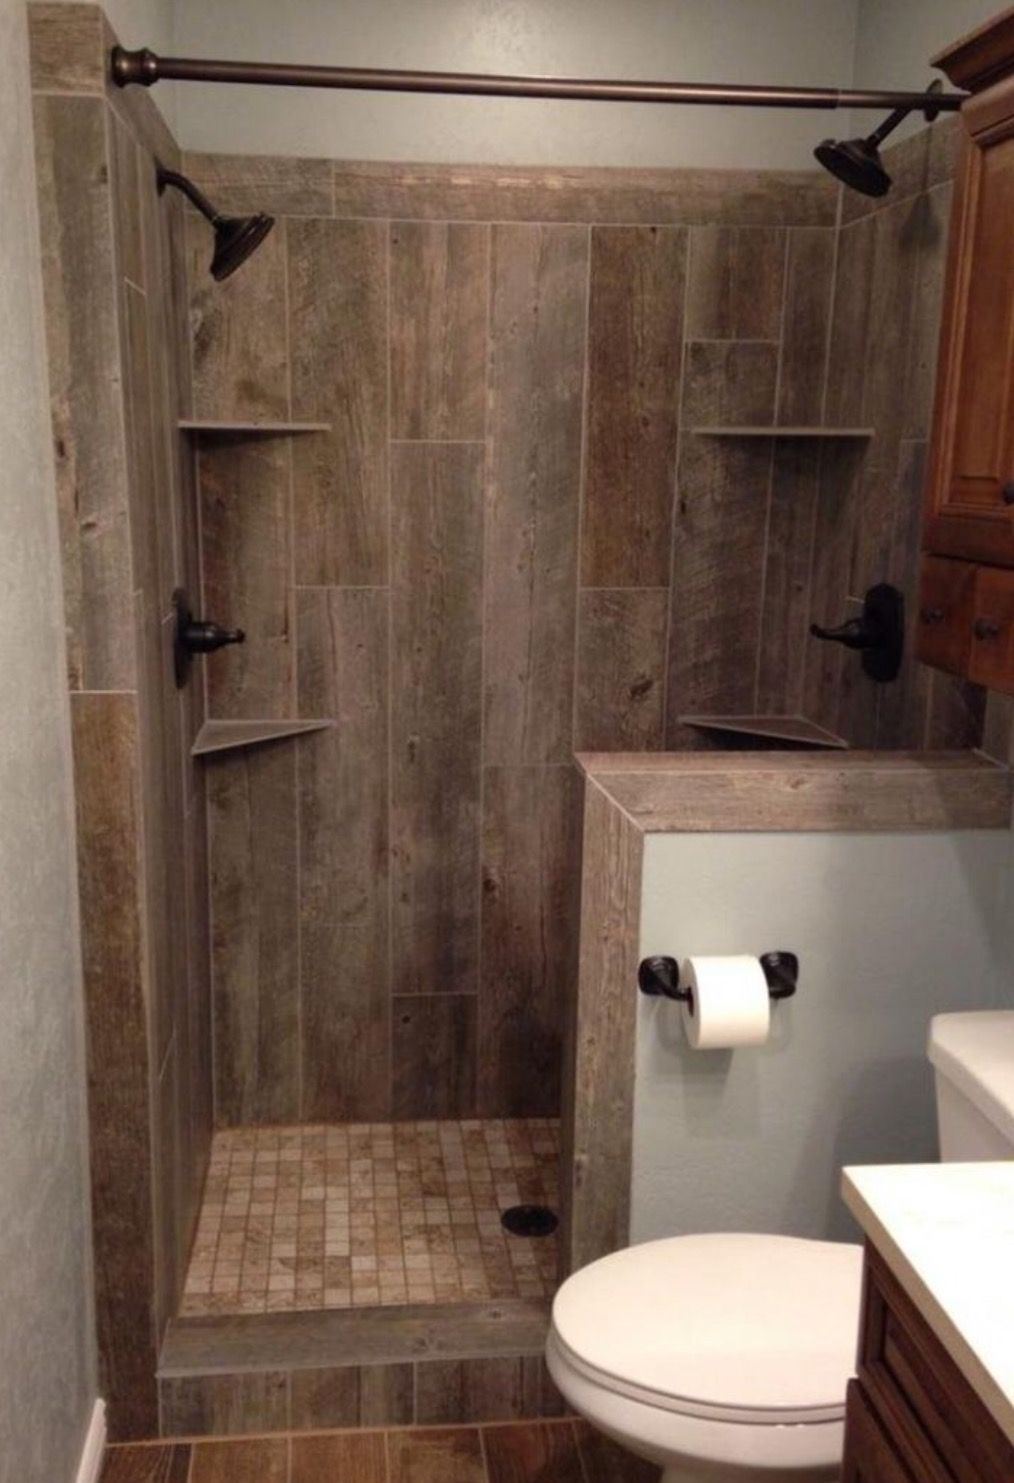 Wood Look Tile In Shower Vertical Installation Small Rustic